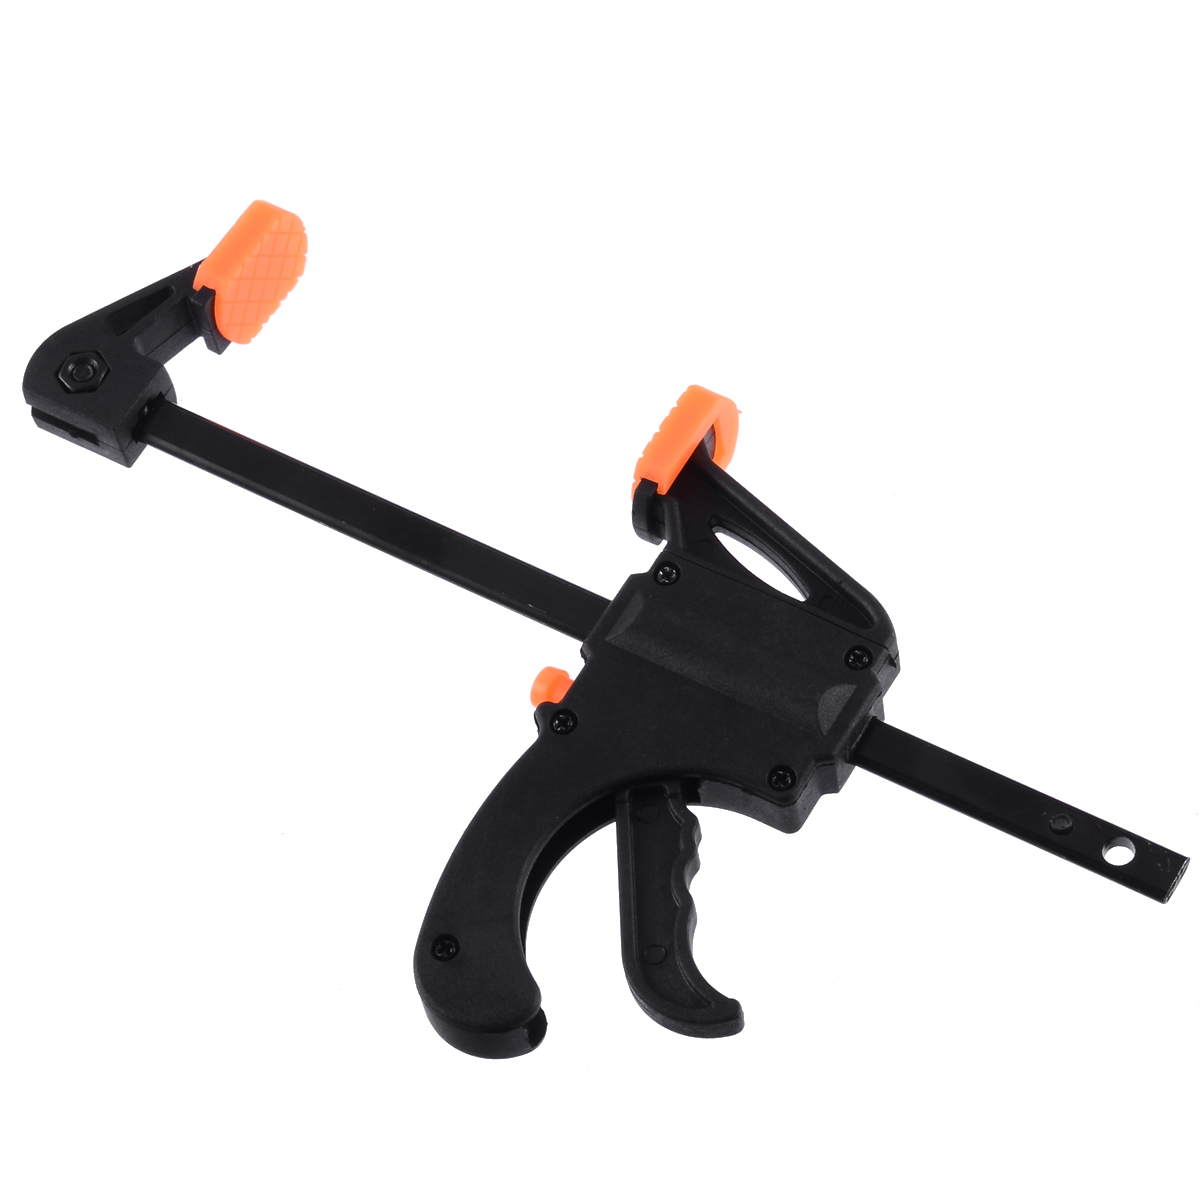 4'' Wooden Board Frame Quick Ratchet Fixed Clip Clamp DIY F Clamp Release Speed Squeeze Bar Fixing Clamp Clip Spreader Hand Tool